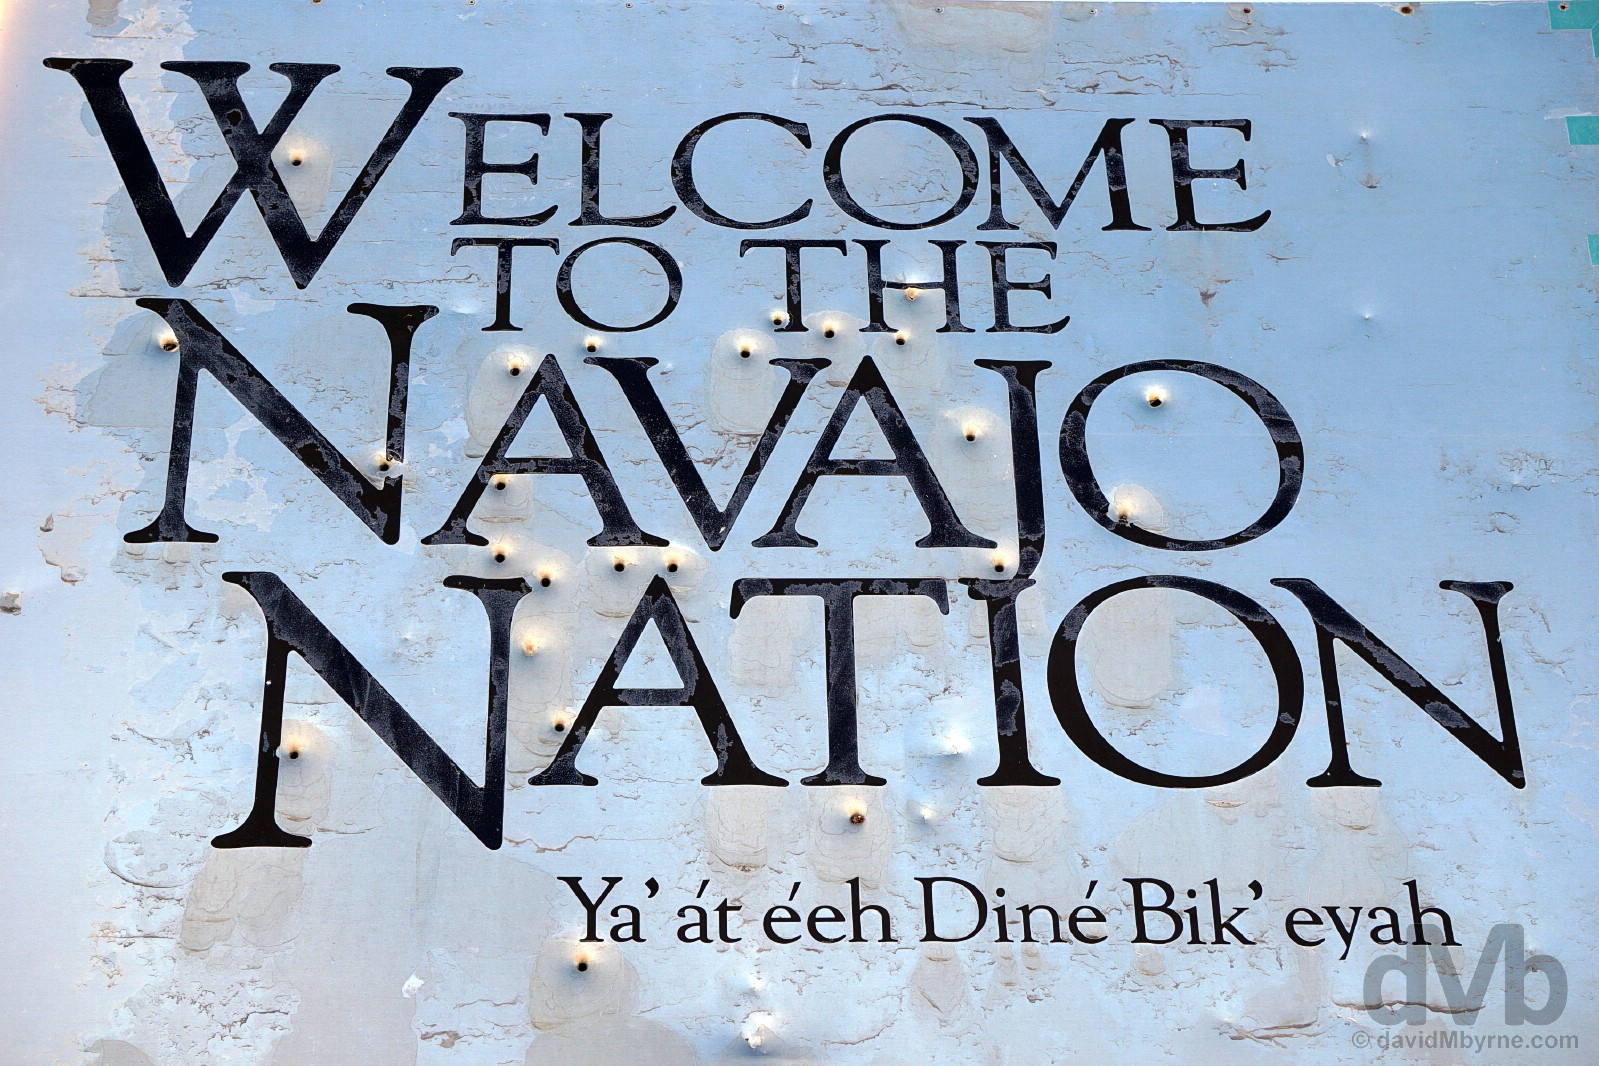 A bullet hole-infused 'Welcome To The Navajo Nation' sign near the Four Corners Monument off US 160 on the New Mexico/Arizona state line. September 10, 2016,